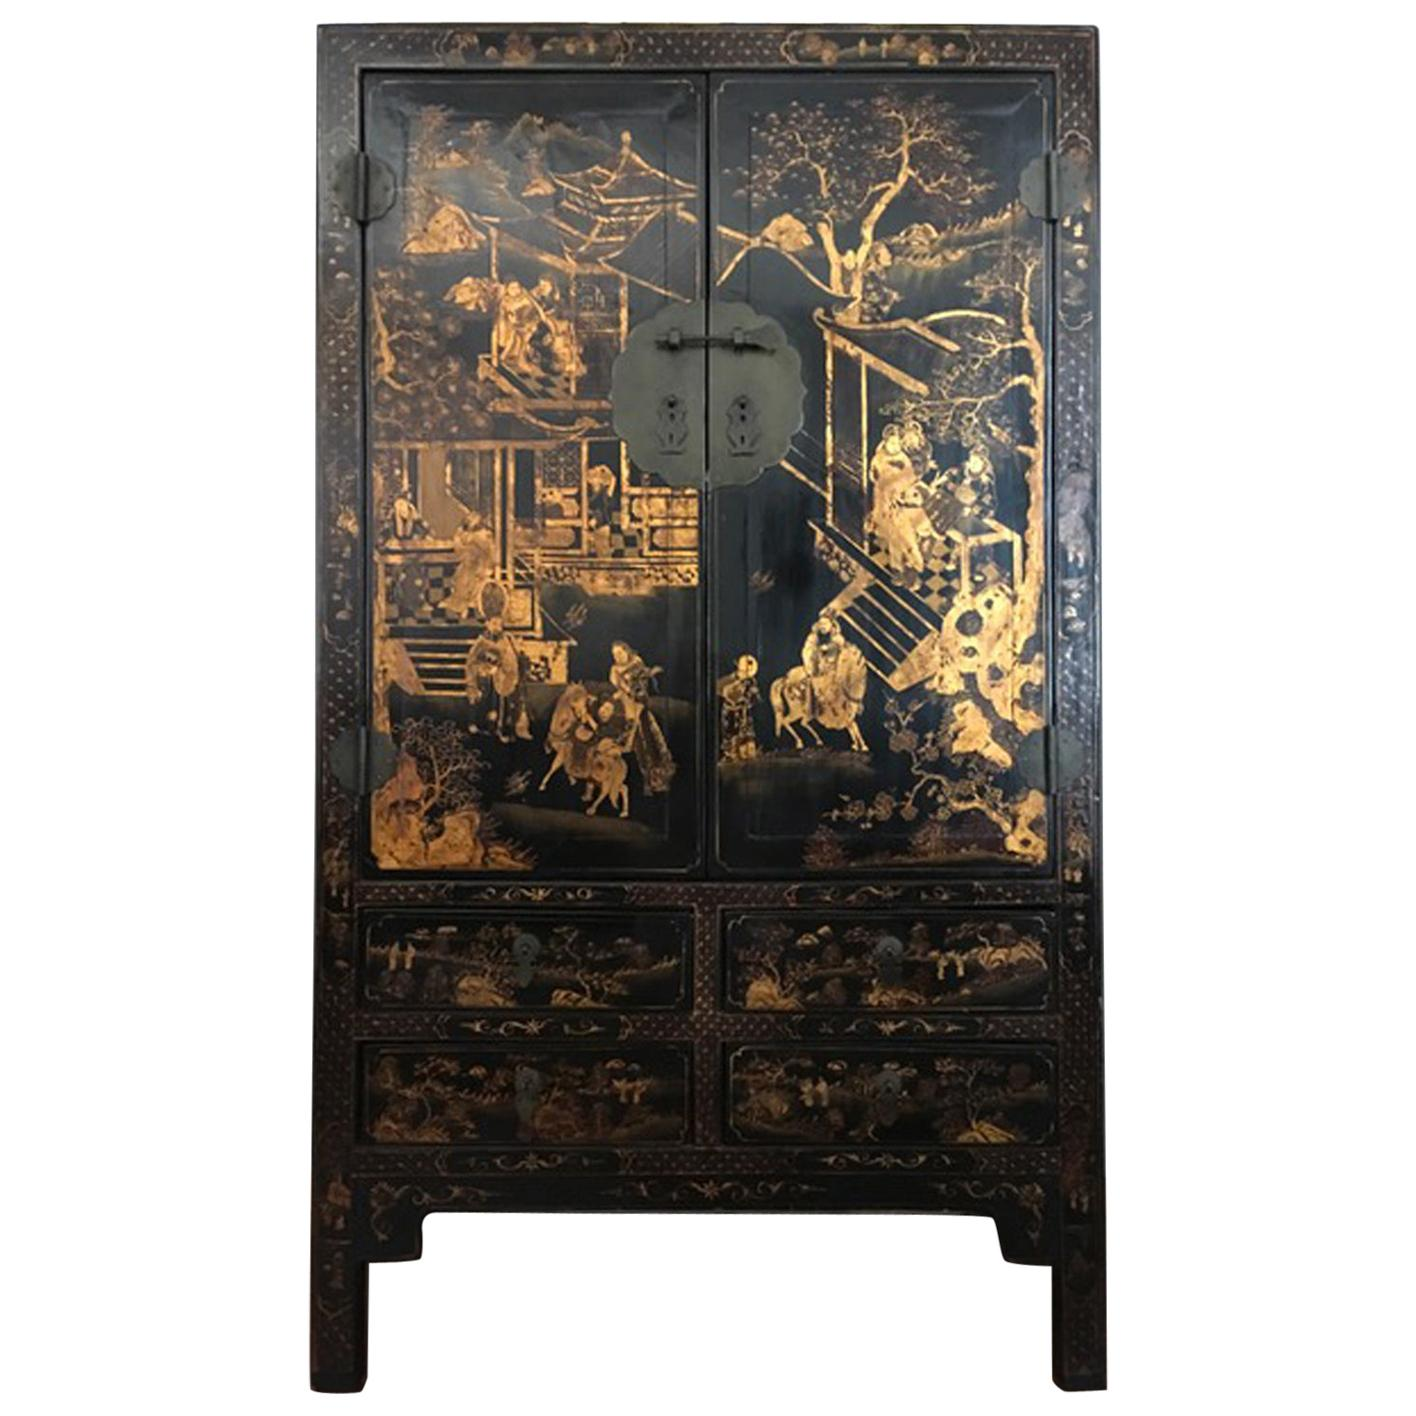 Antique And Vintage Secretaires 1495 For Sale At 1stdibs >> Chinese Cabinets 341 For Sale At 1stdibs